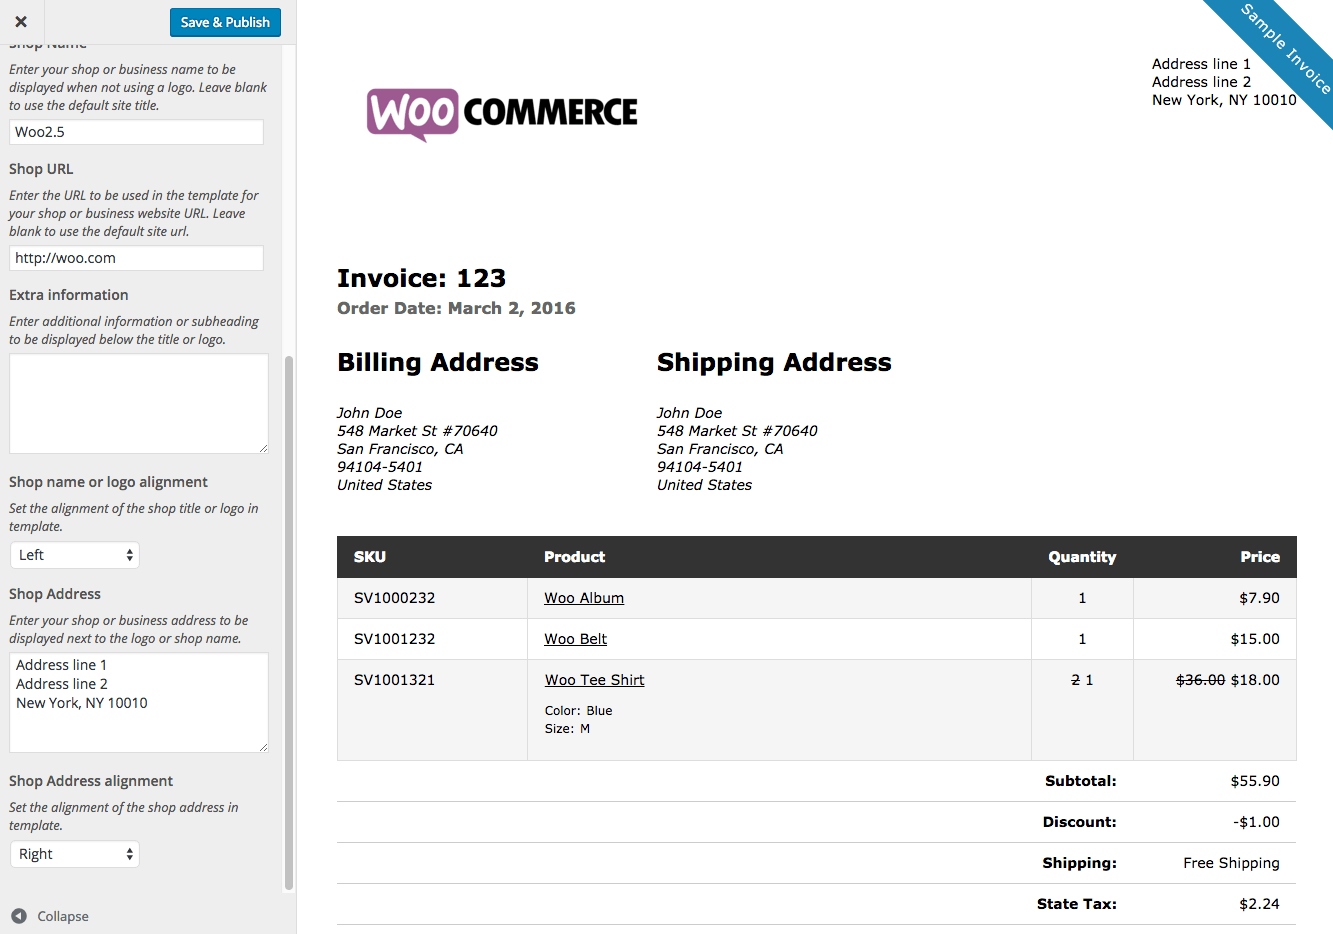 Carsforlessus  Remarkable Woocommerce Print Invoices Amp Packing Lists  Woocommerce Docs With Lovely Woocommerce Print Invoices  Packing Lists Customizer With Delectable Self Bill Invoice Also Honda Fit Dealer Invoice In Addition Customised Invoice Book And Mobile Invoice Software As Well As Invoice Access Database Additionally Proforma Invoice Sample Doc From Docswoocommercecom With Carsforlessus  Lovely Woocommerce Print Invoices Amp Packing Lists  Woocommerce Docs With Delectable Woocommerce Print Invoices  Packing Lists Customizer And Remarkable Self Bill Invoice Also Honda Fit Dealer Invoice In Addition Customised Invoice Book From Docswoocommercecom